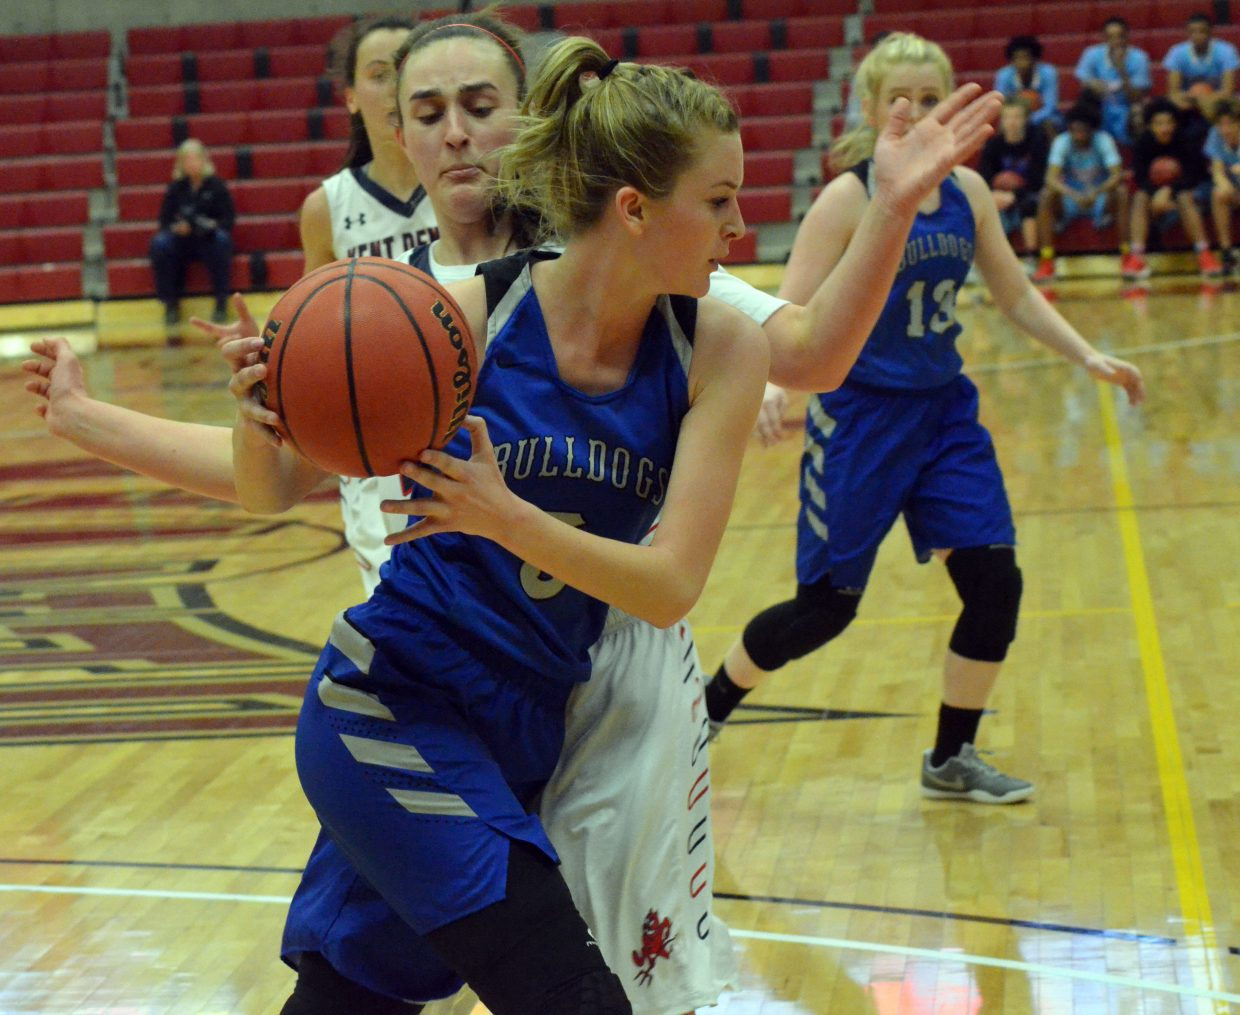 Moffat County High School's Kinlie Brennise looks to pass back to teammate Jaidyn Steele.